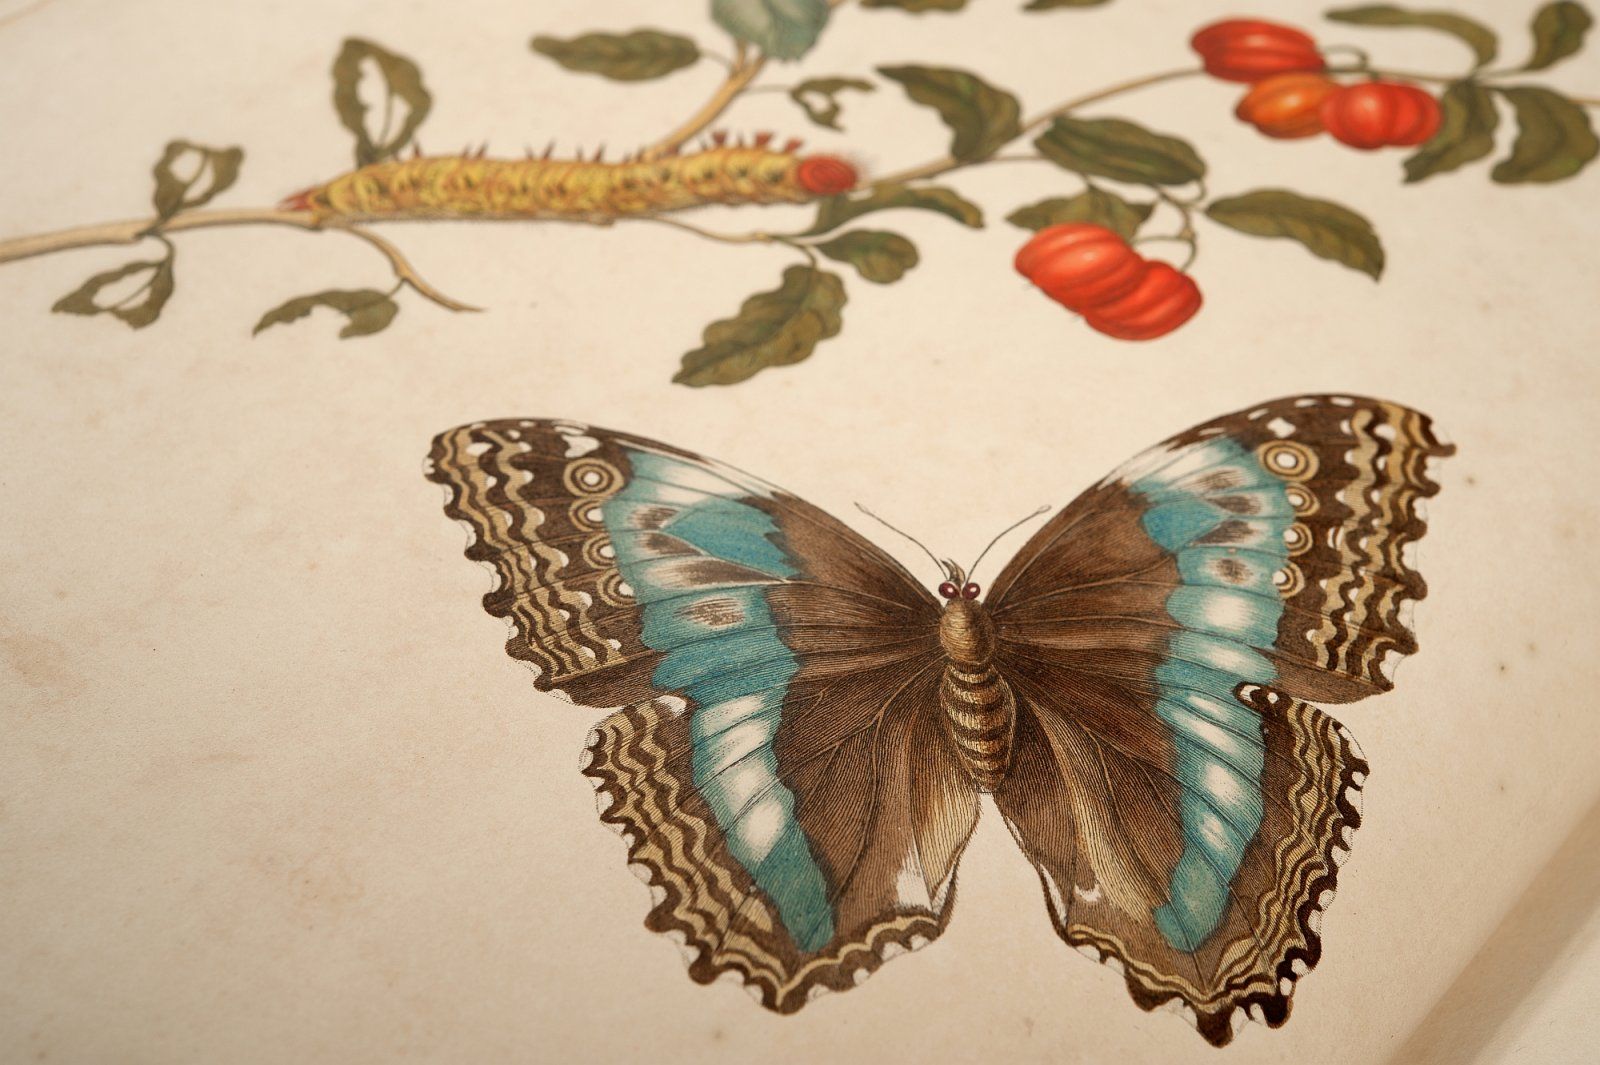 Detail plaat VII, Metamorphosis Merian, 1705